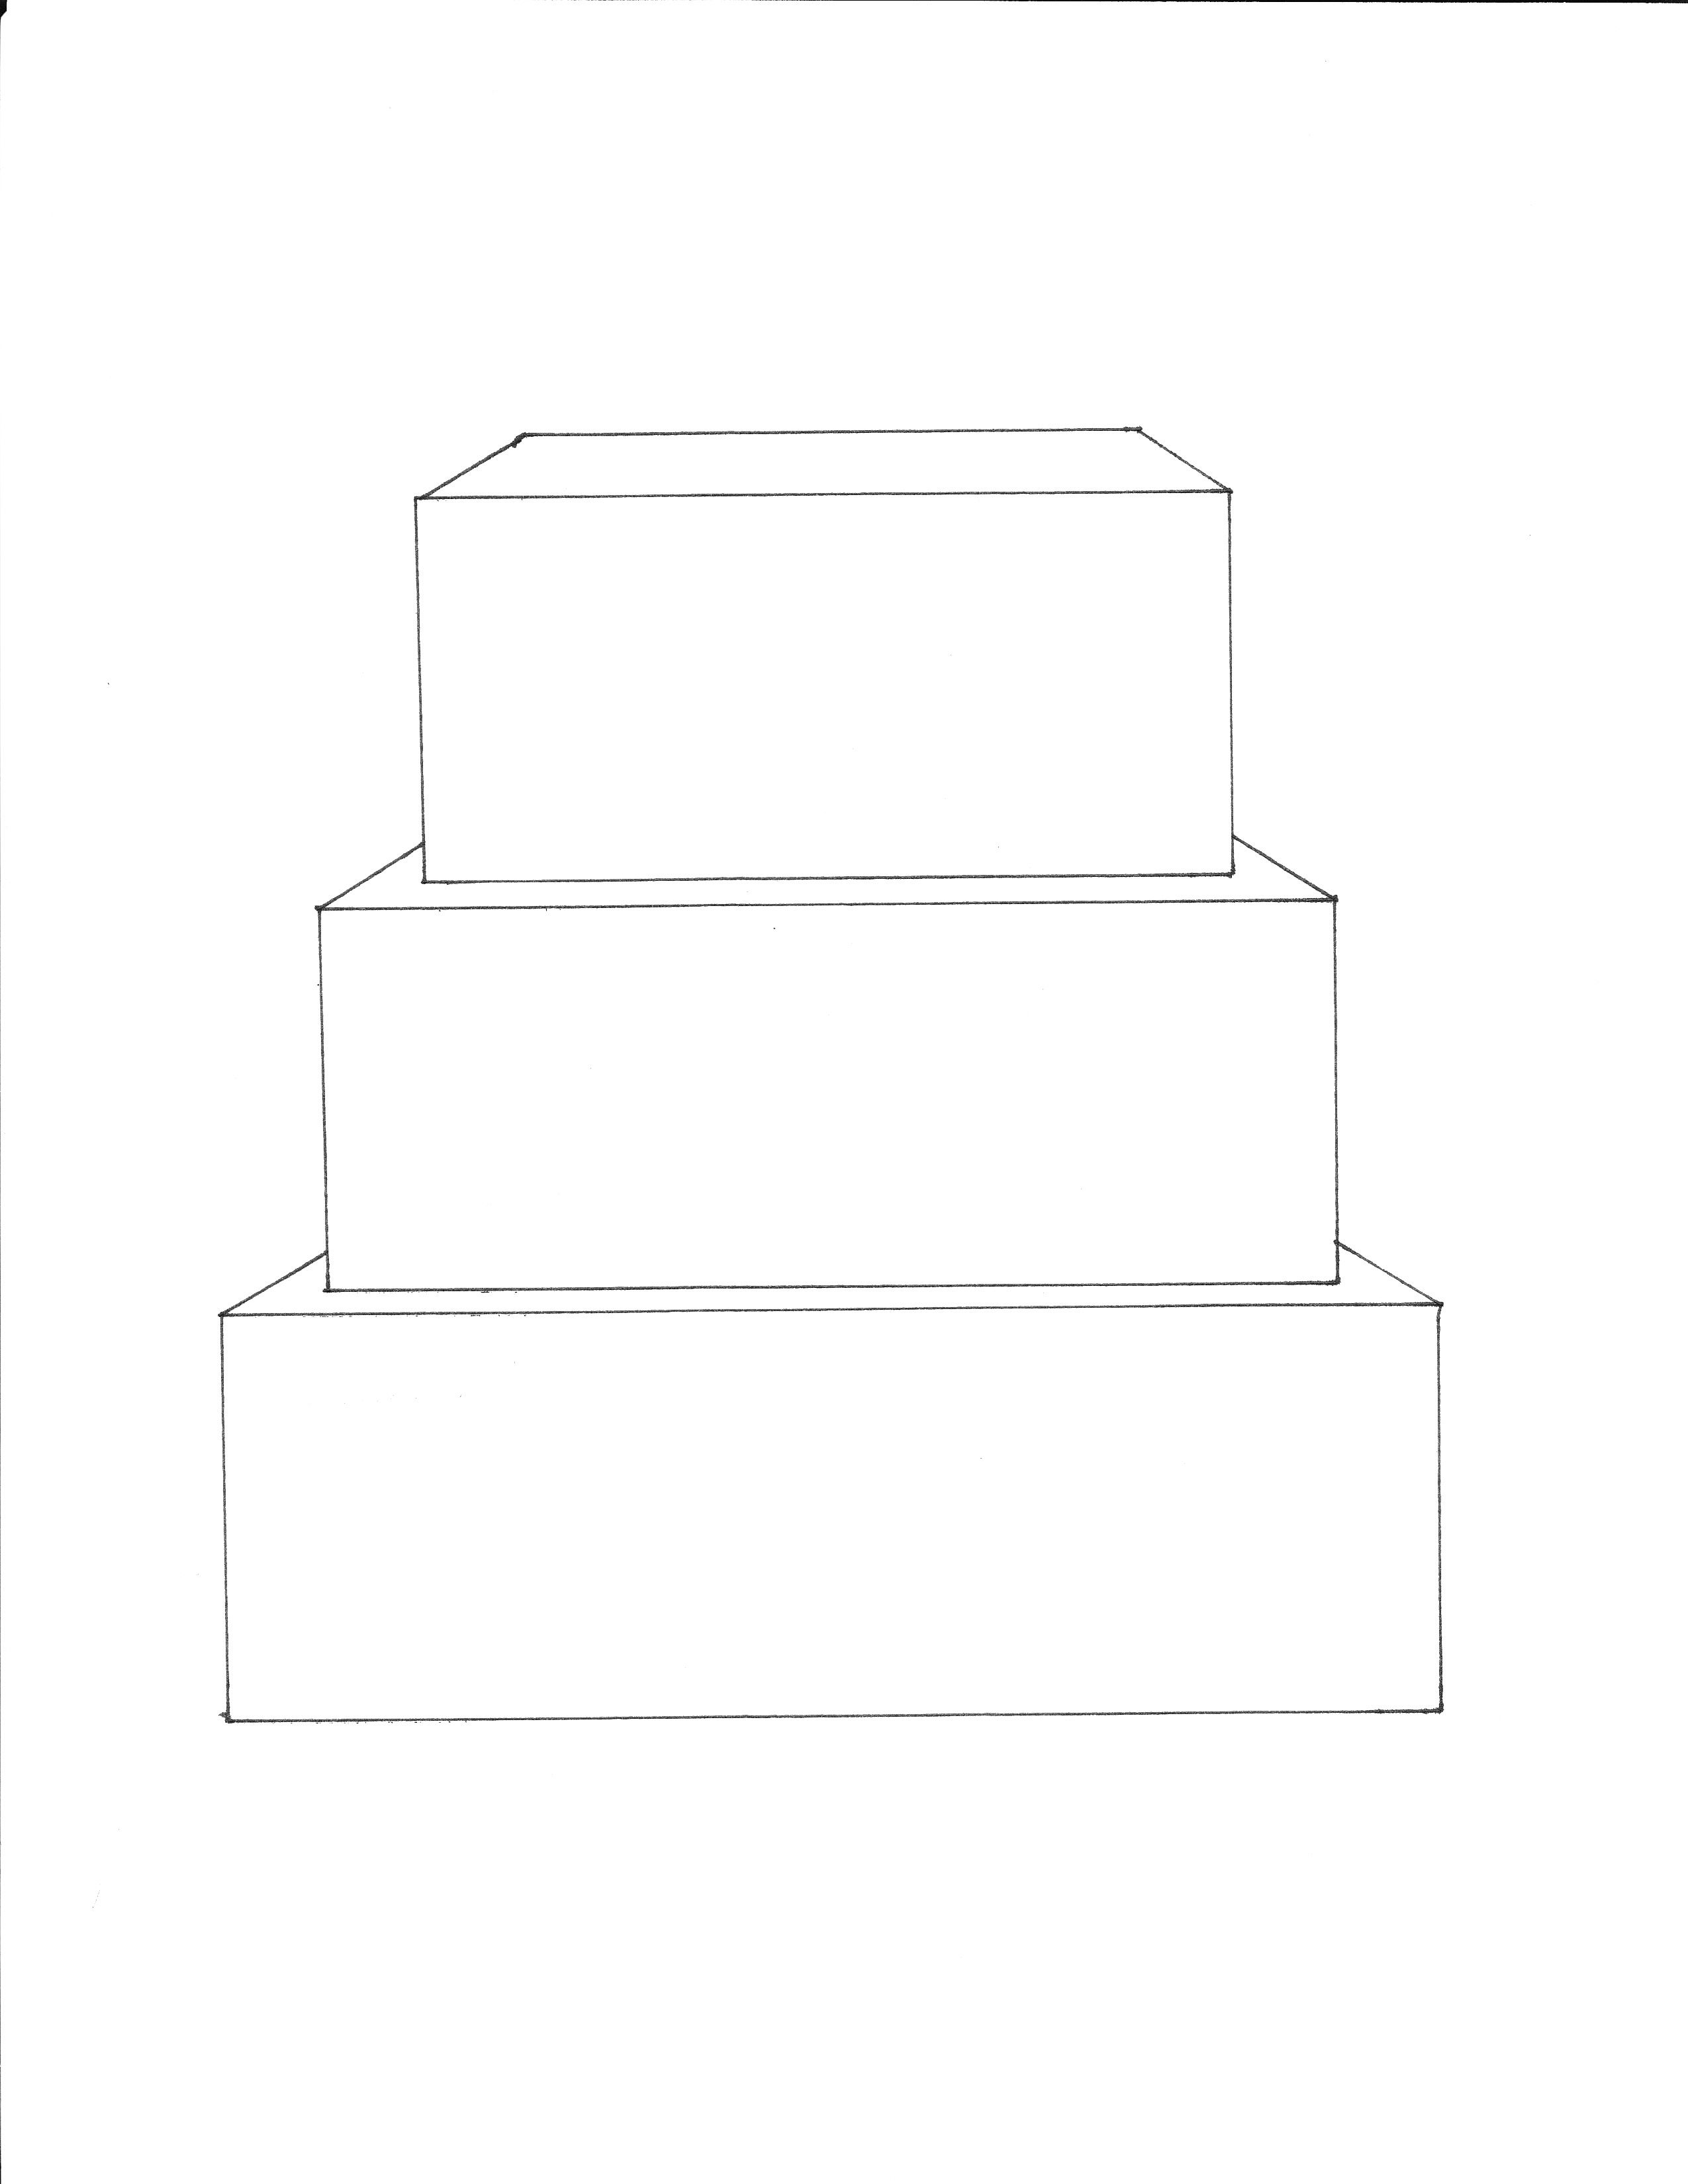 3 Tier Square Cake Template Free Downloadable Cake